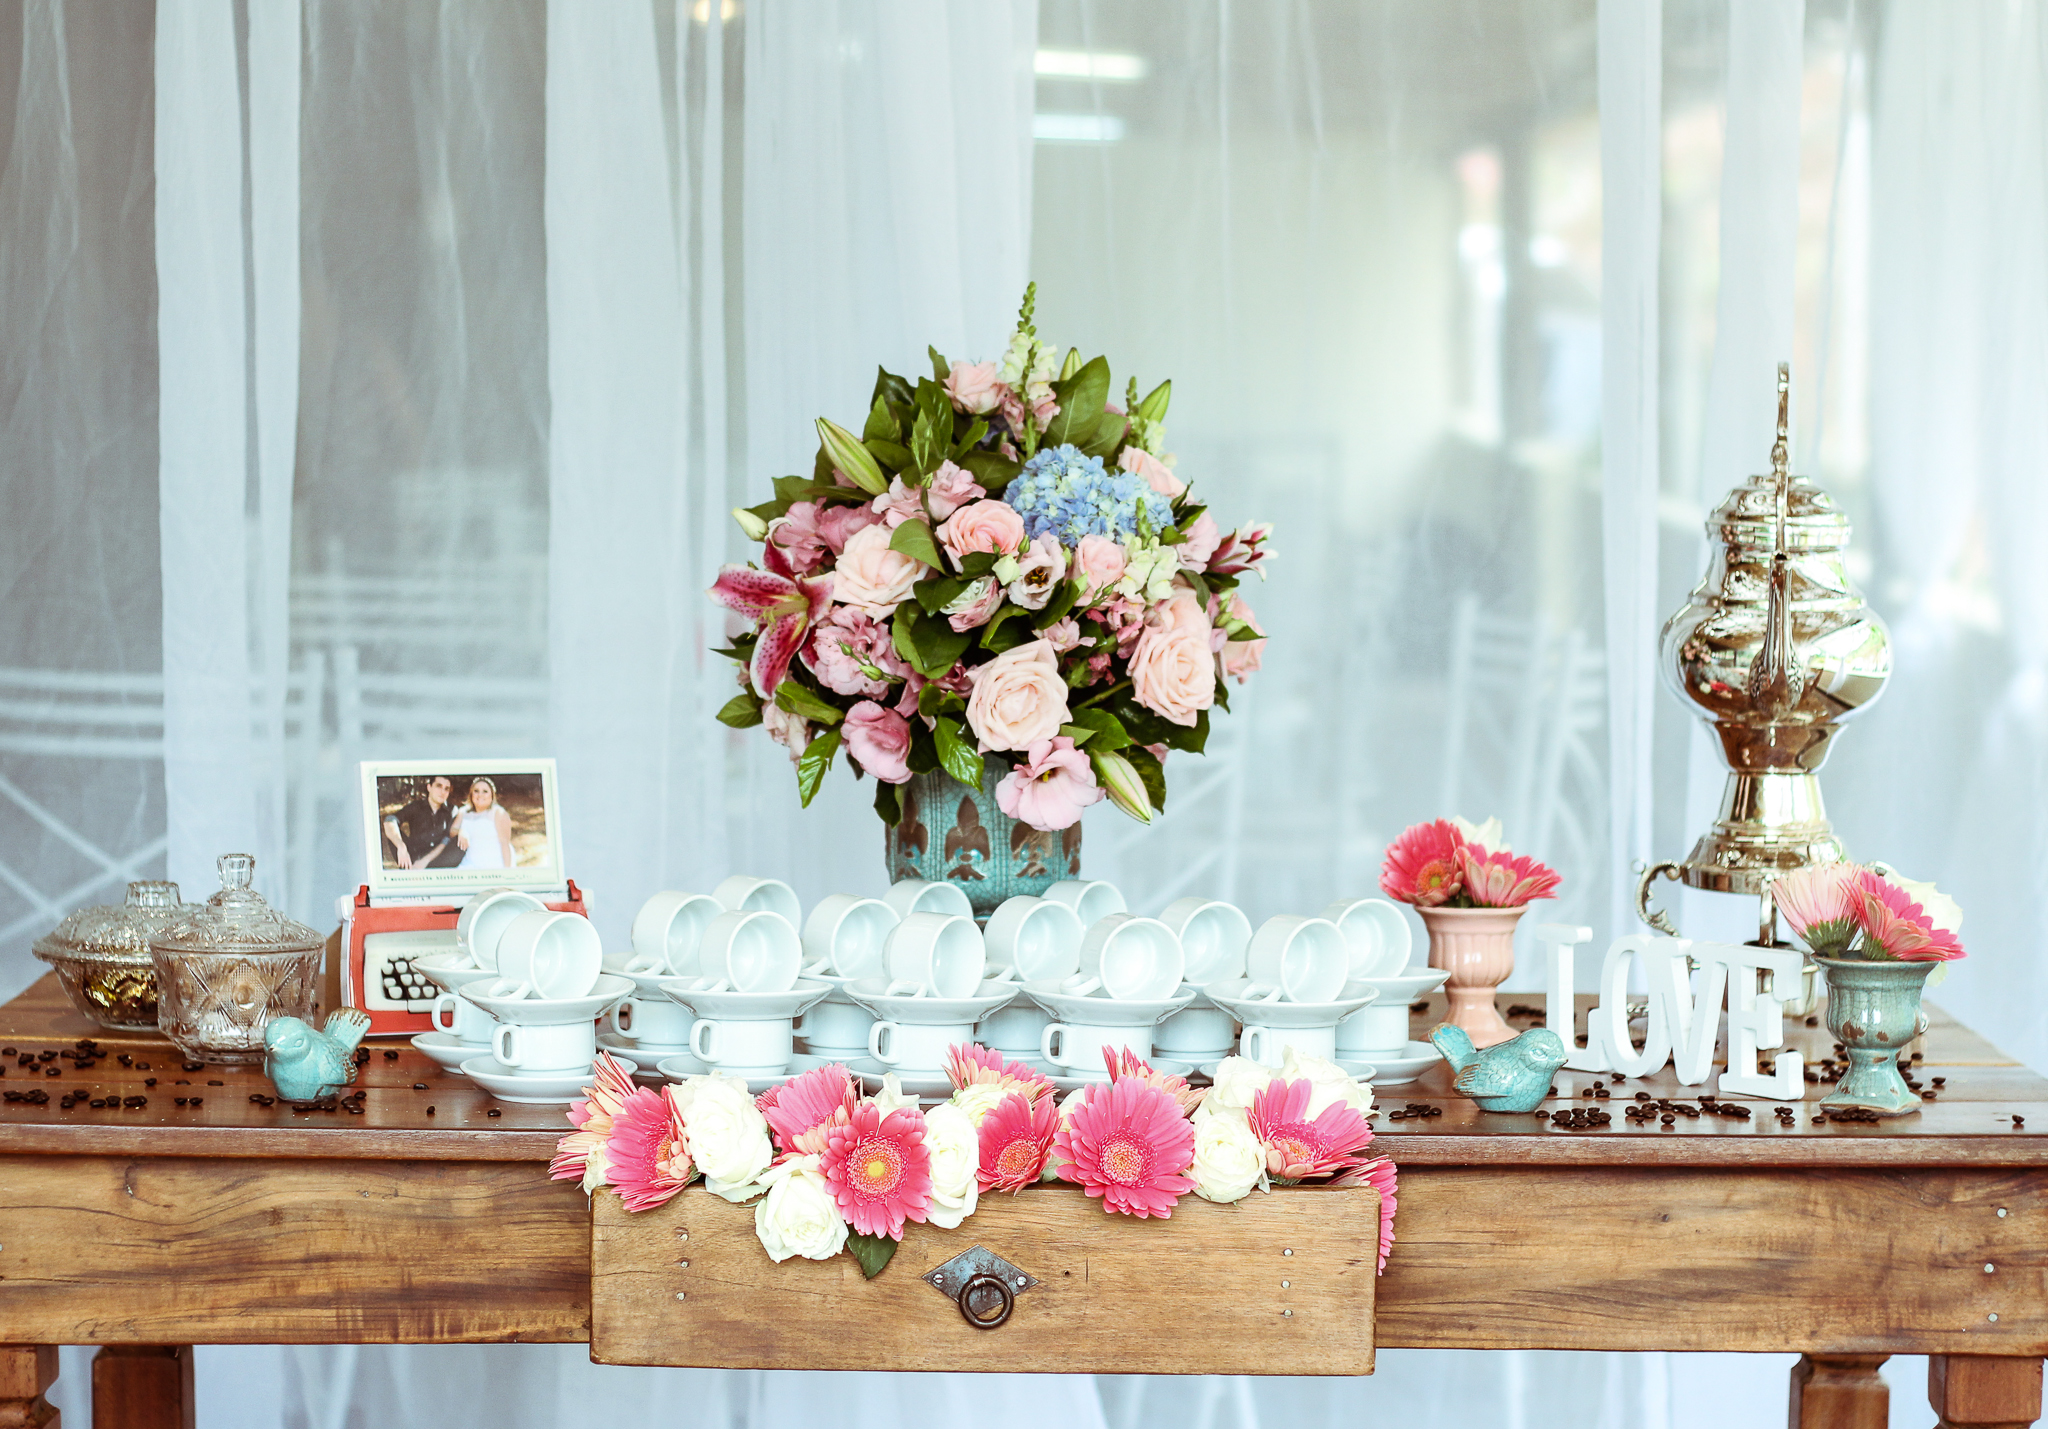 5-Perfect-Ideas-for-Your-Free-Wedding-Website-Pexels-Wedding-Decorations